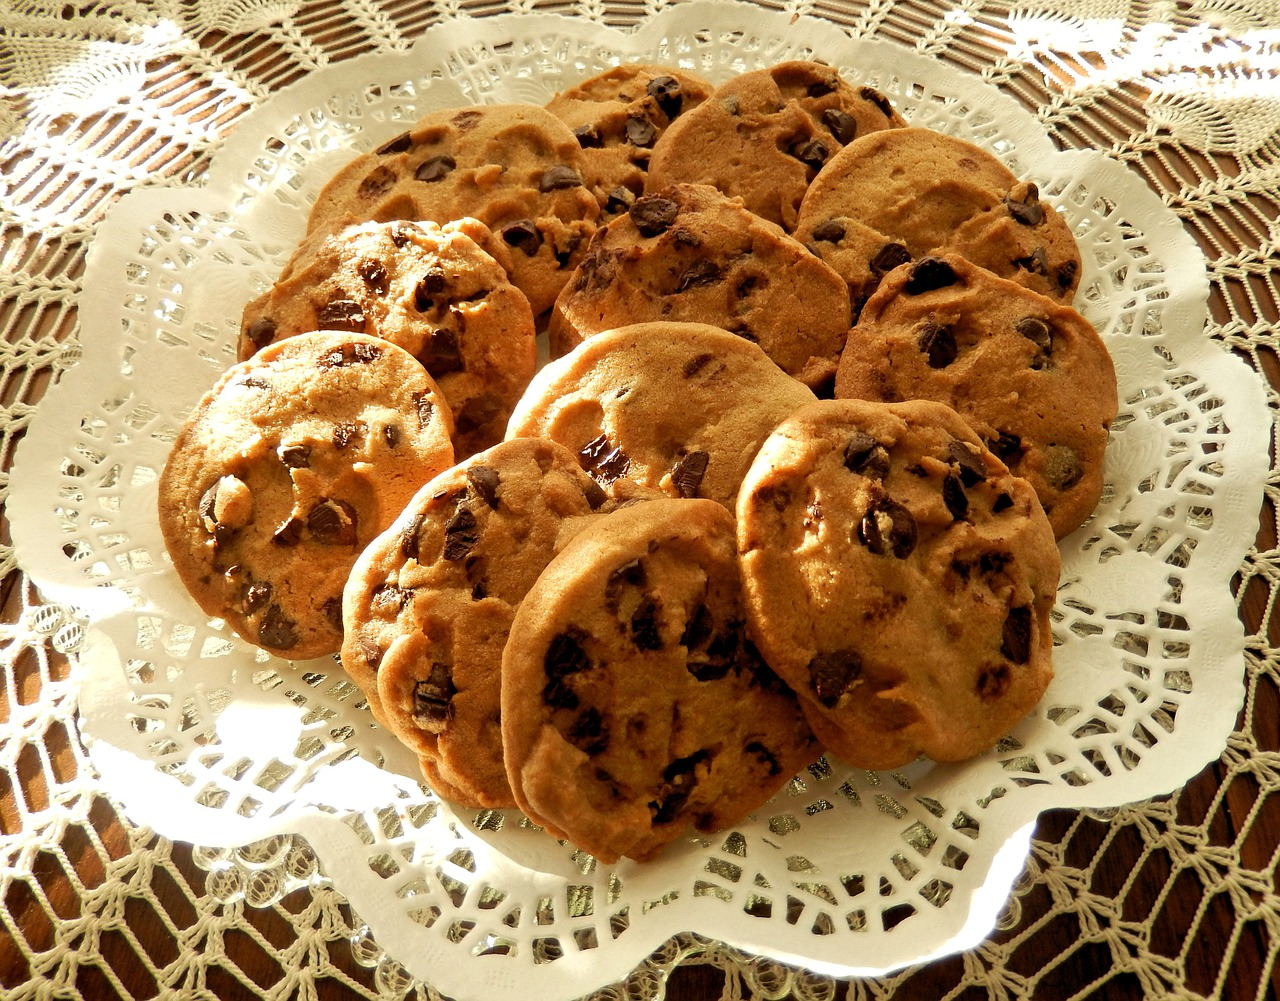 How to make your own Chips Ahoy Cookies